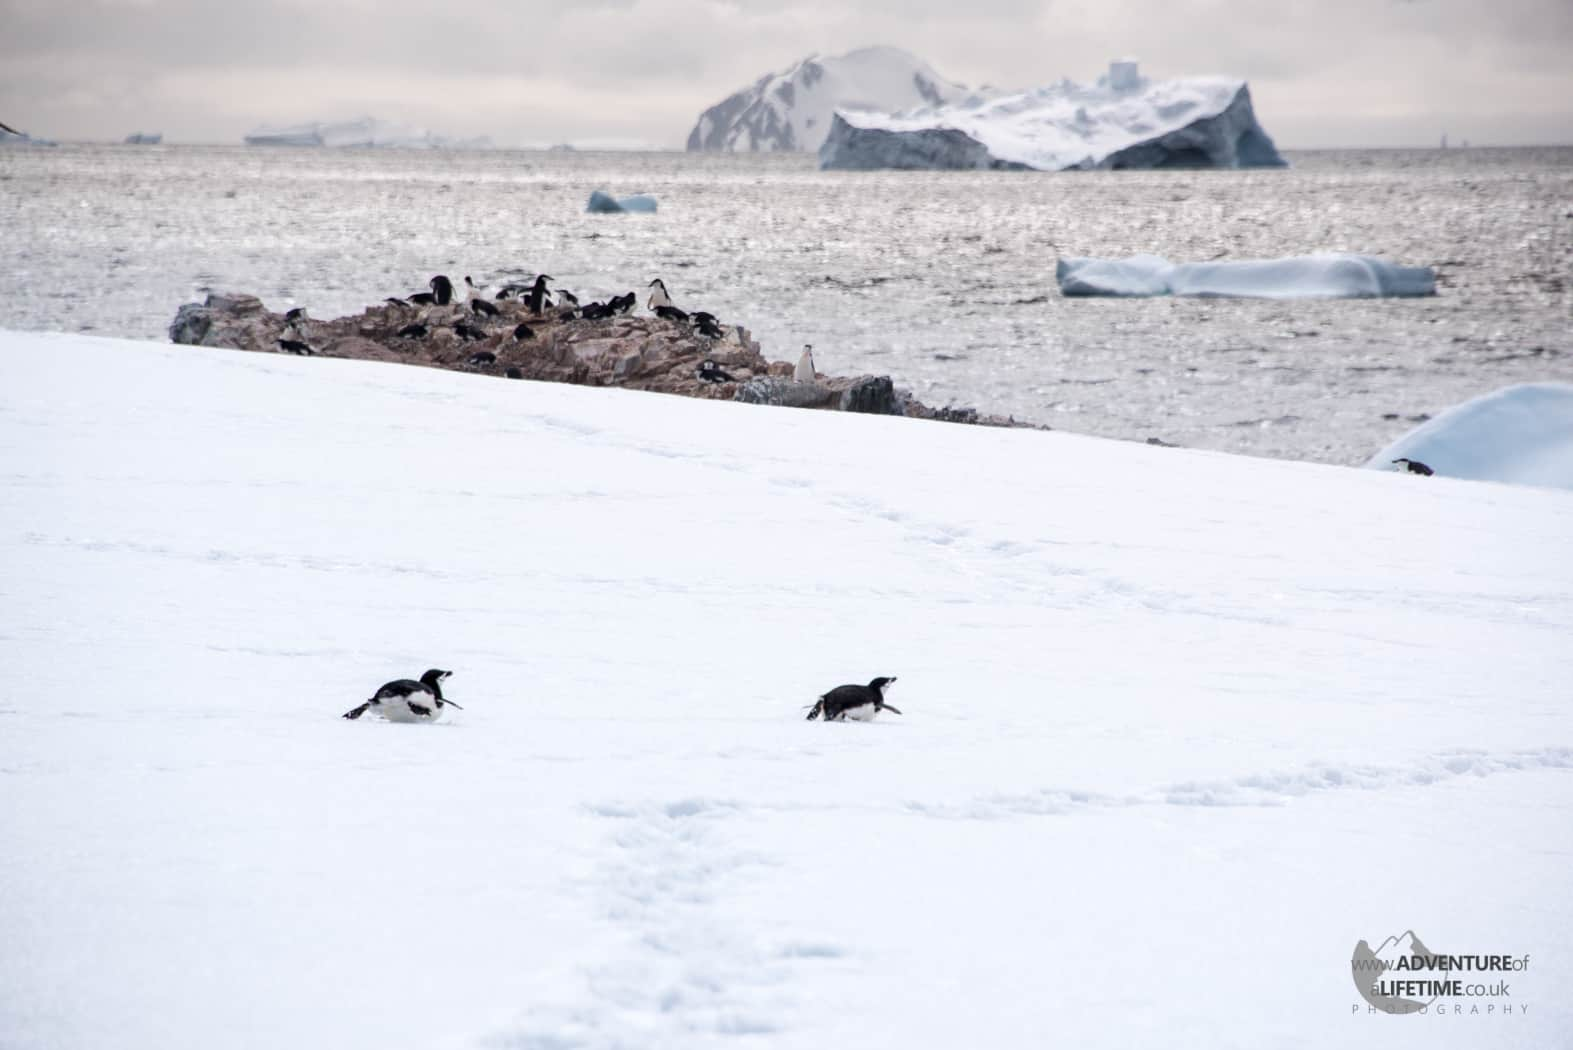 Penguin Games on Hydrurga Rocks, Antarctica